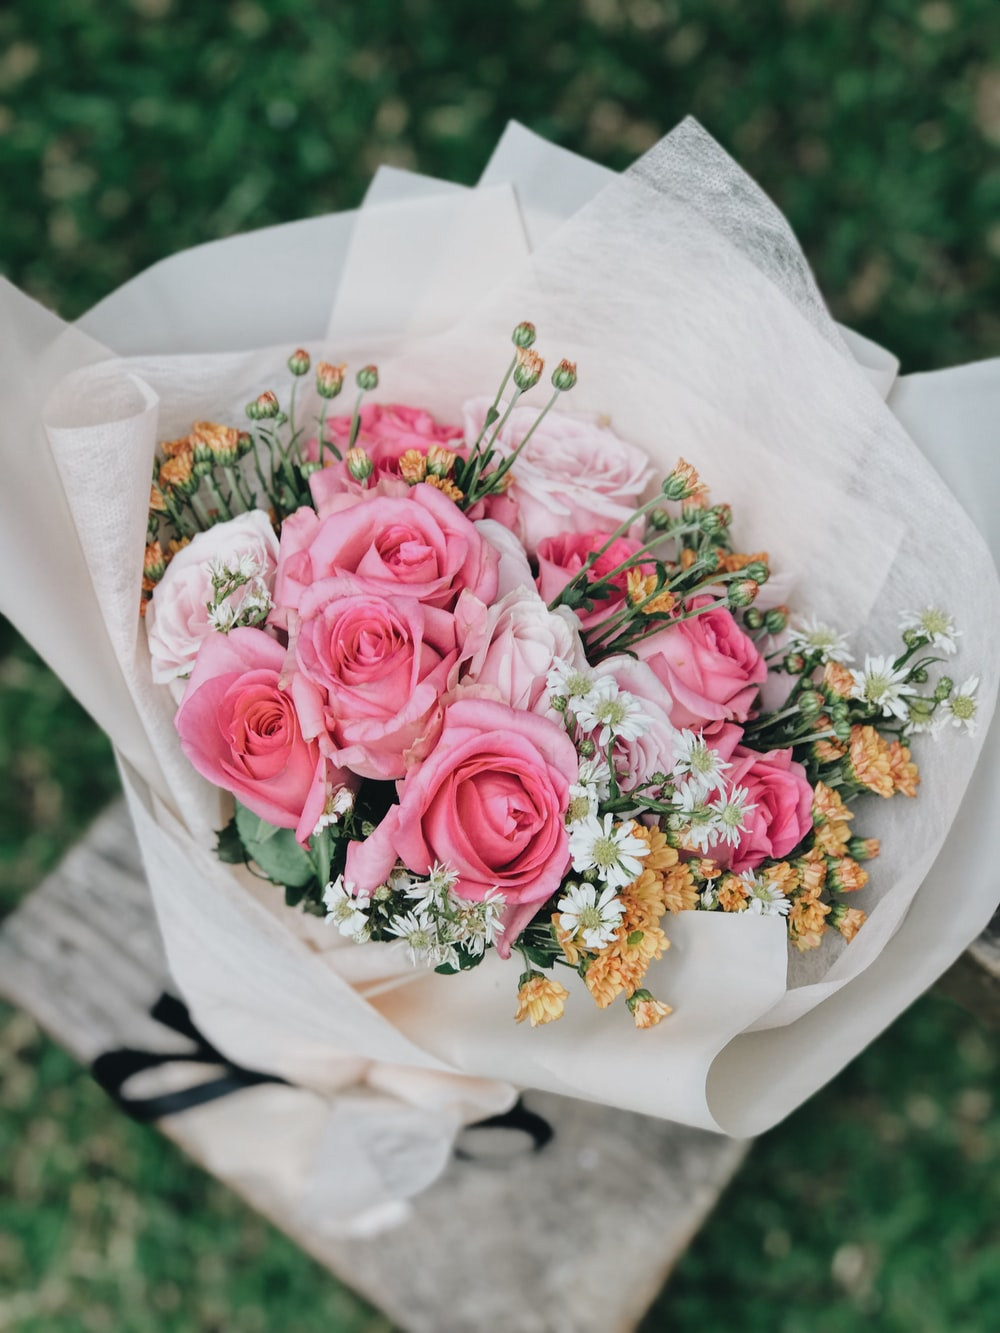 500 bouquet pictures download free images on unsplash bouquet pictures izmirmasajfo